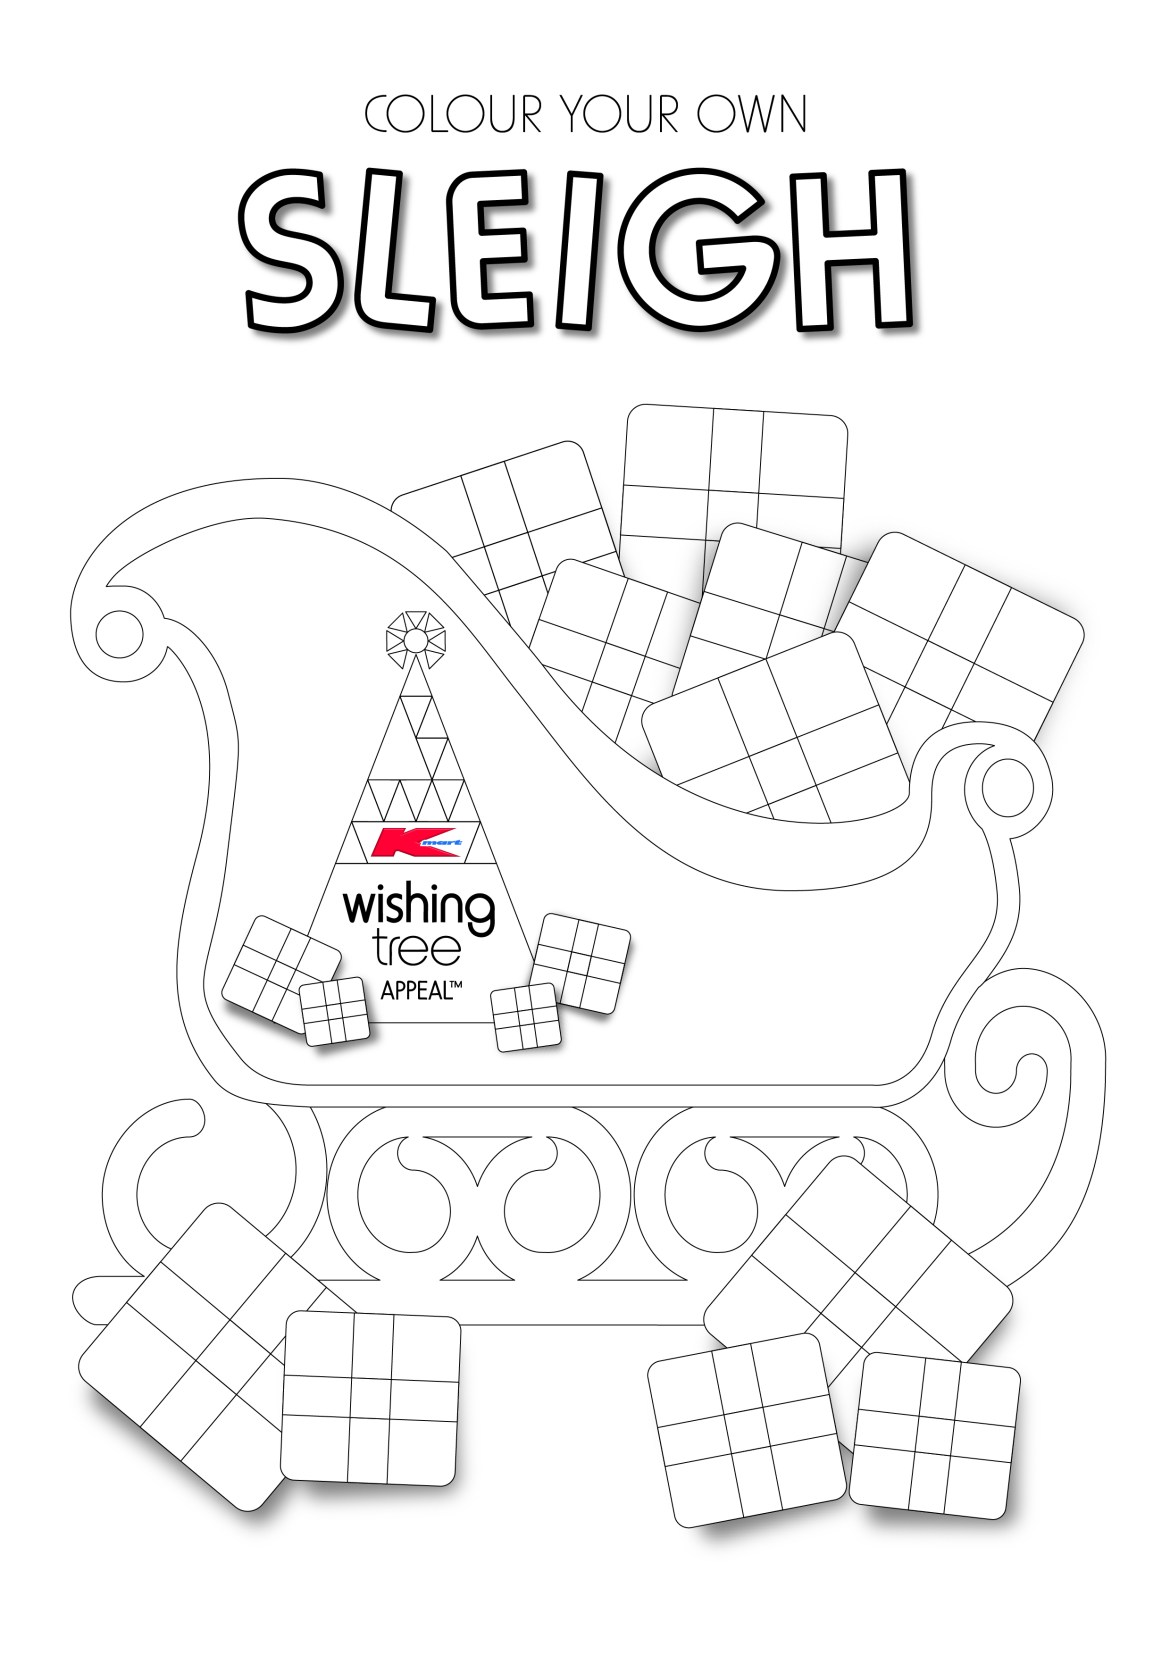 5625_Kmart Wishing Tree 2014_Colour In Sleigh